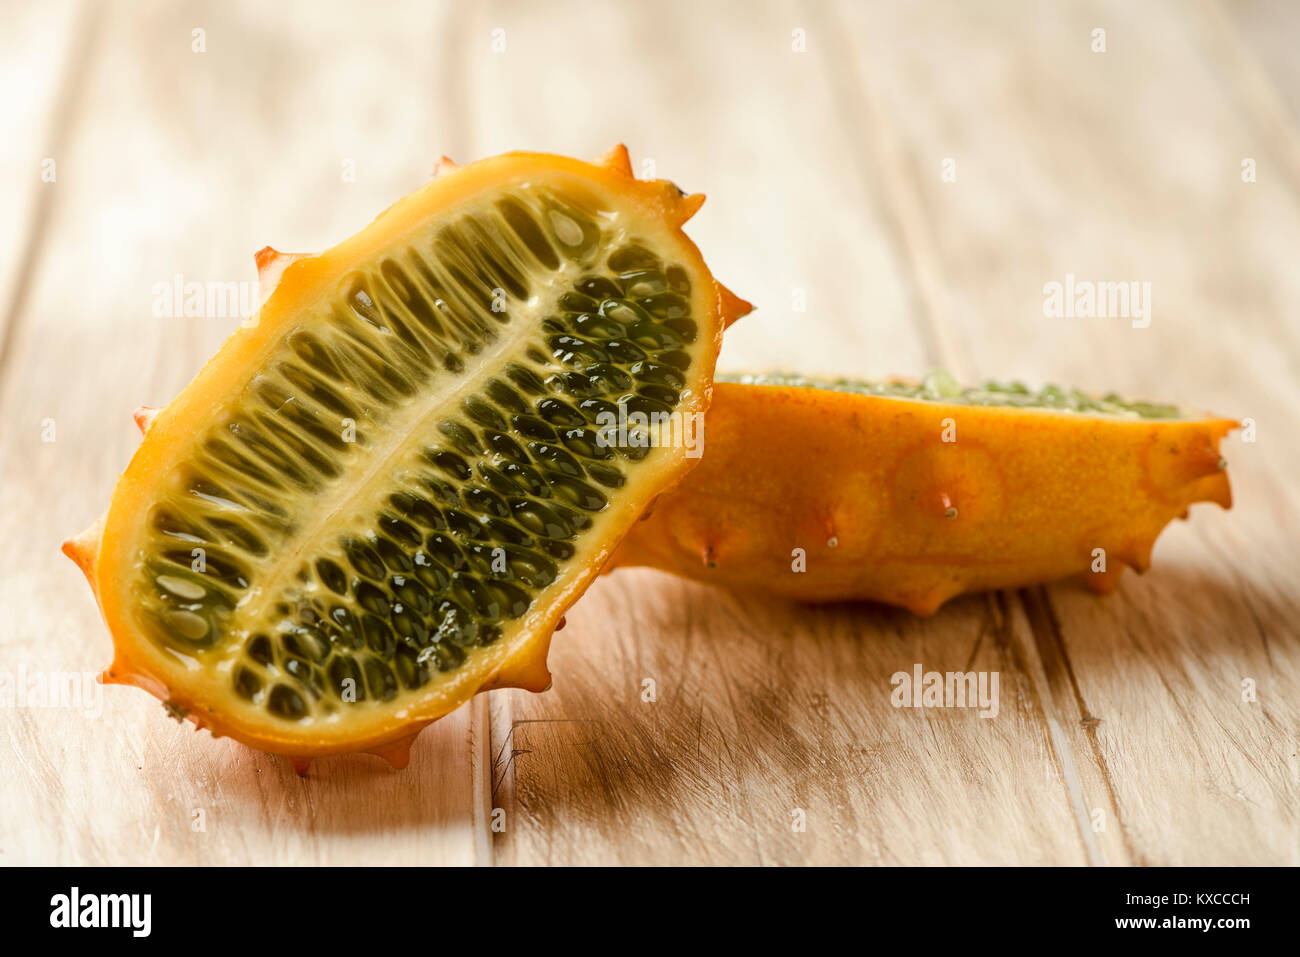 closeup of a kiwano or horned melon cut in halves on a white rustic wooden table - Stock Image